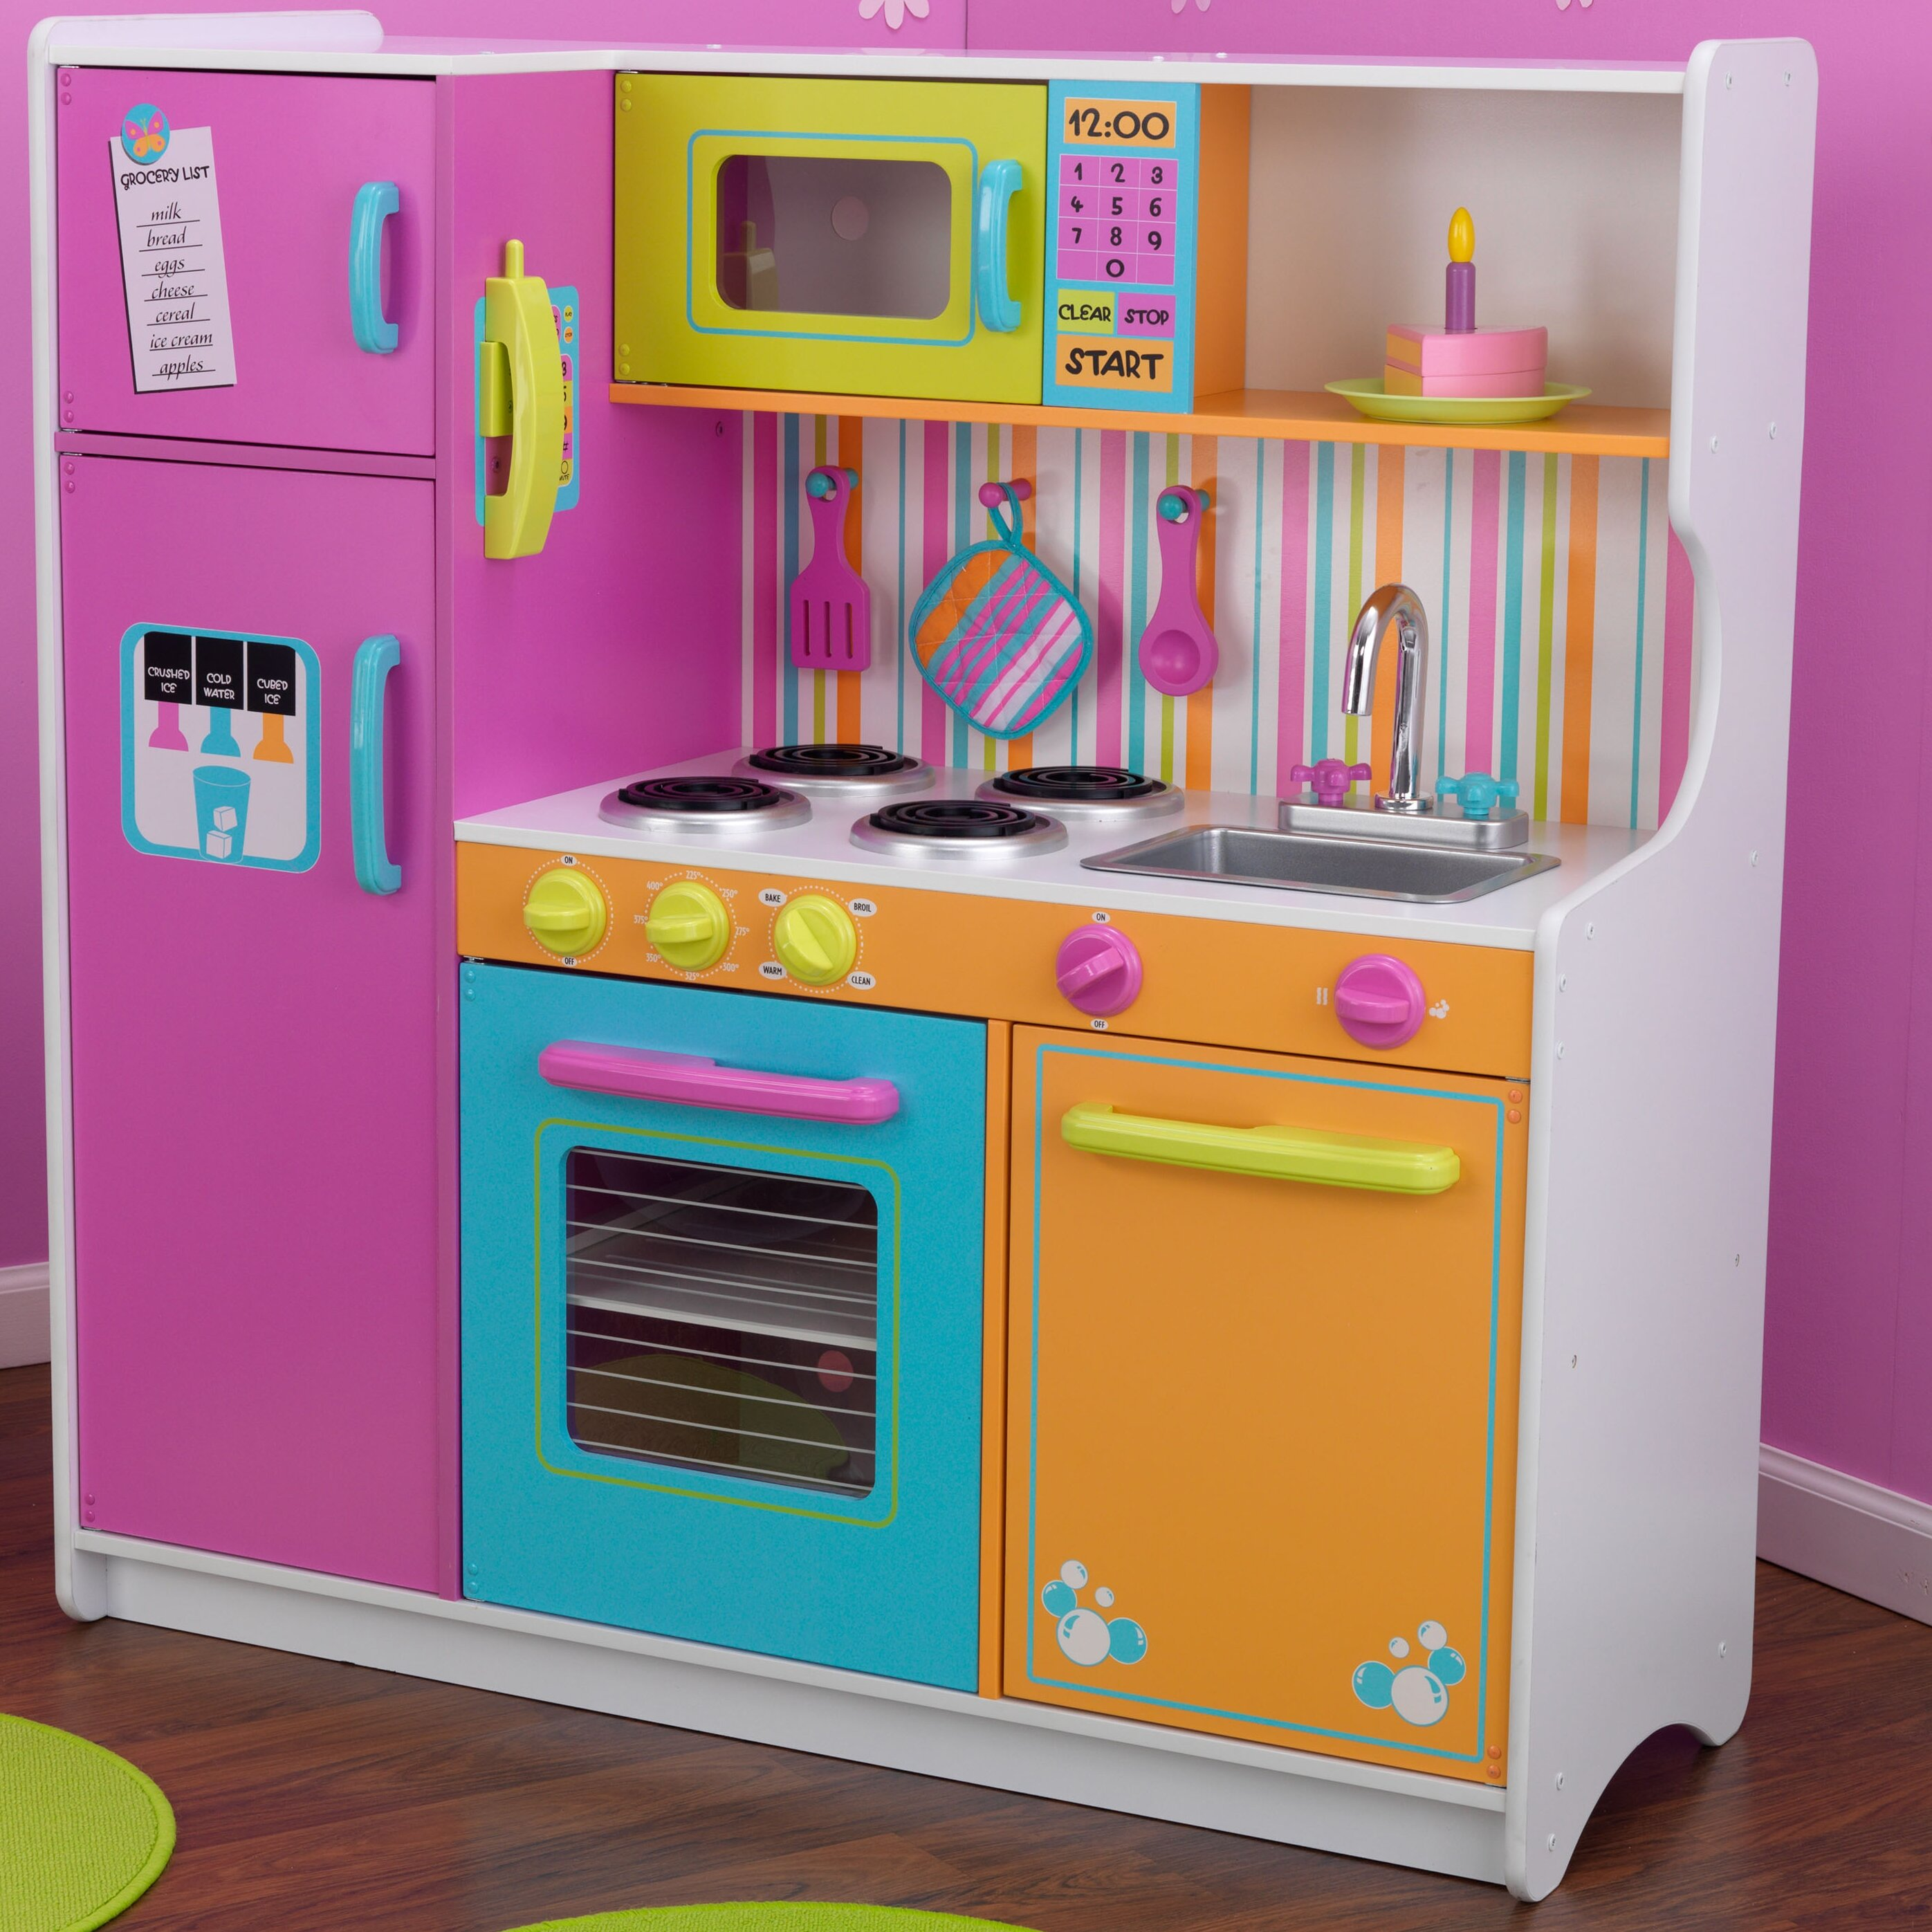 Children Kitchen Set: KidKraft Deluxe Big & Bright Kitchen Play Set & Reviews